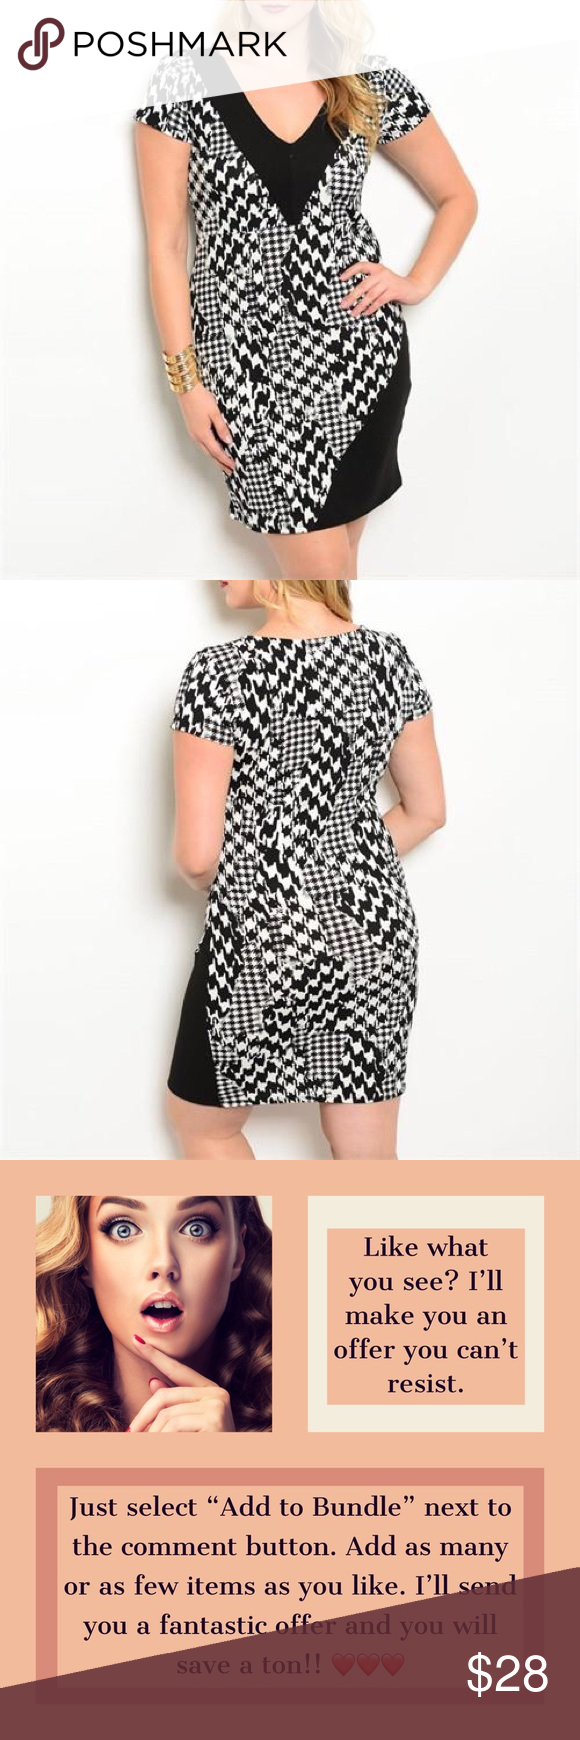 Houndstooth Bodycon Dress Plus Size Houndstooth Dress